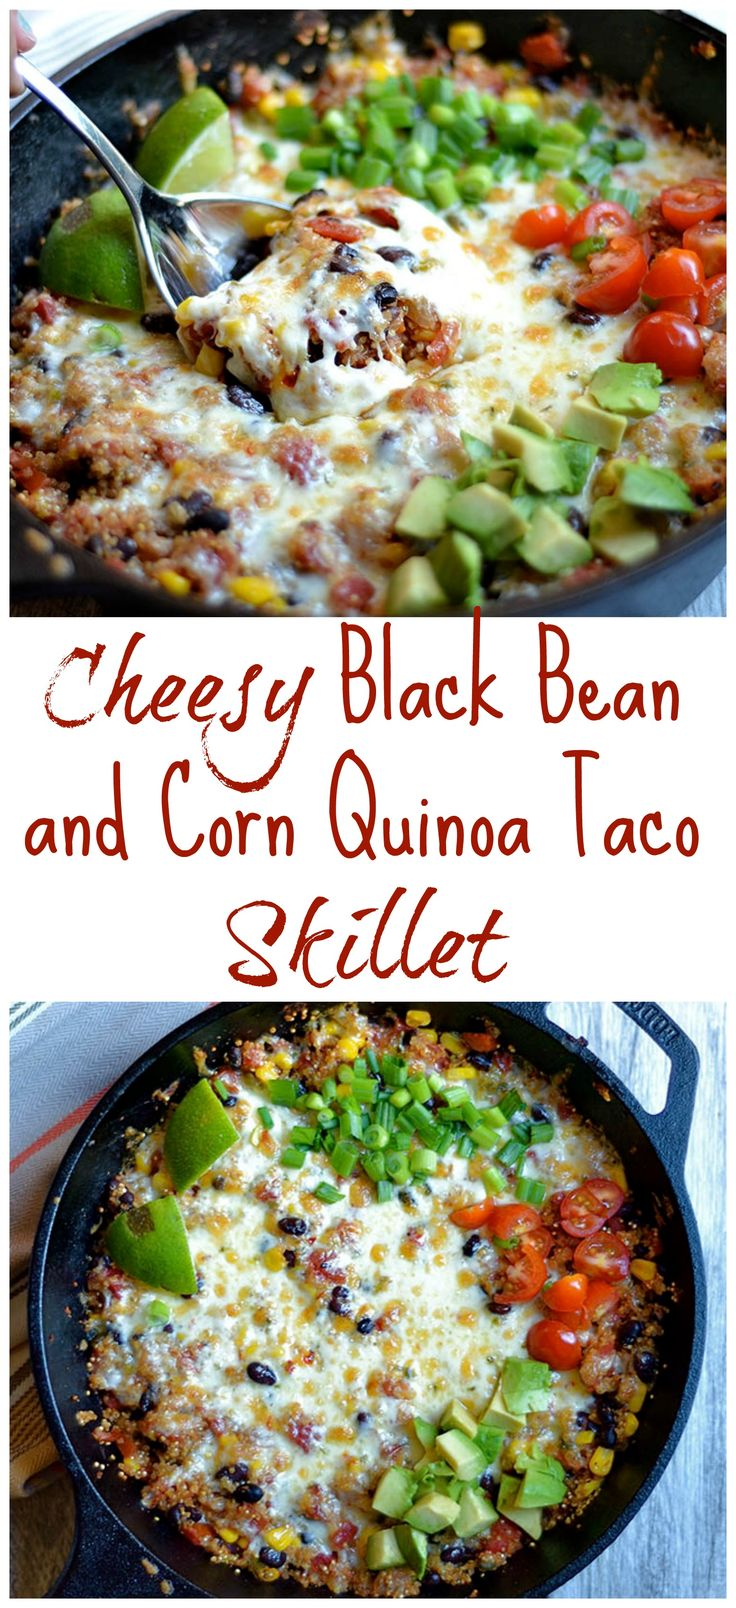 Super simple Vegetarian Taco skillet that is packed with flavor! So easy to…